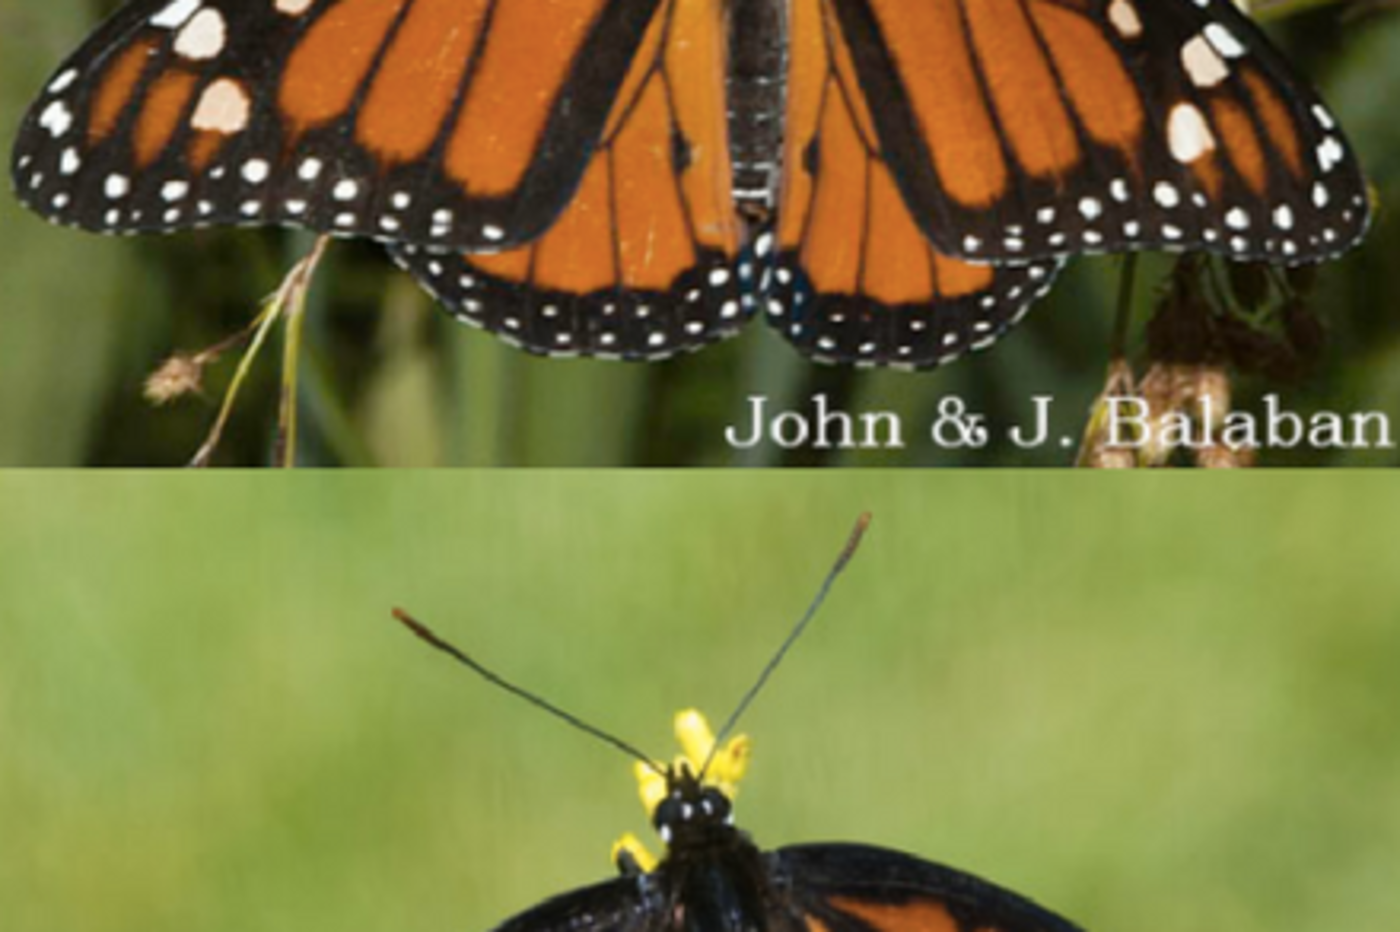 Two butterflies that are orange with black stripes, in green foliage